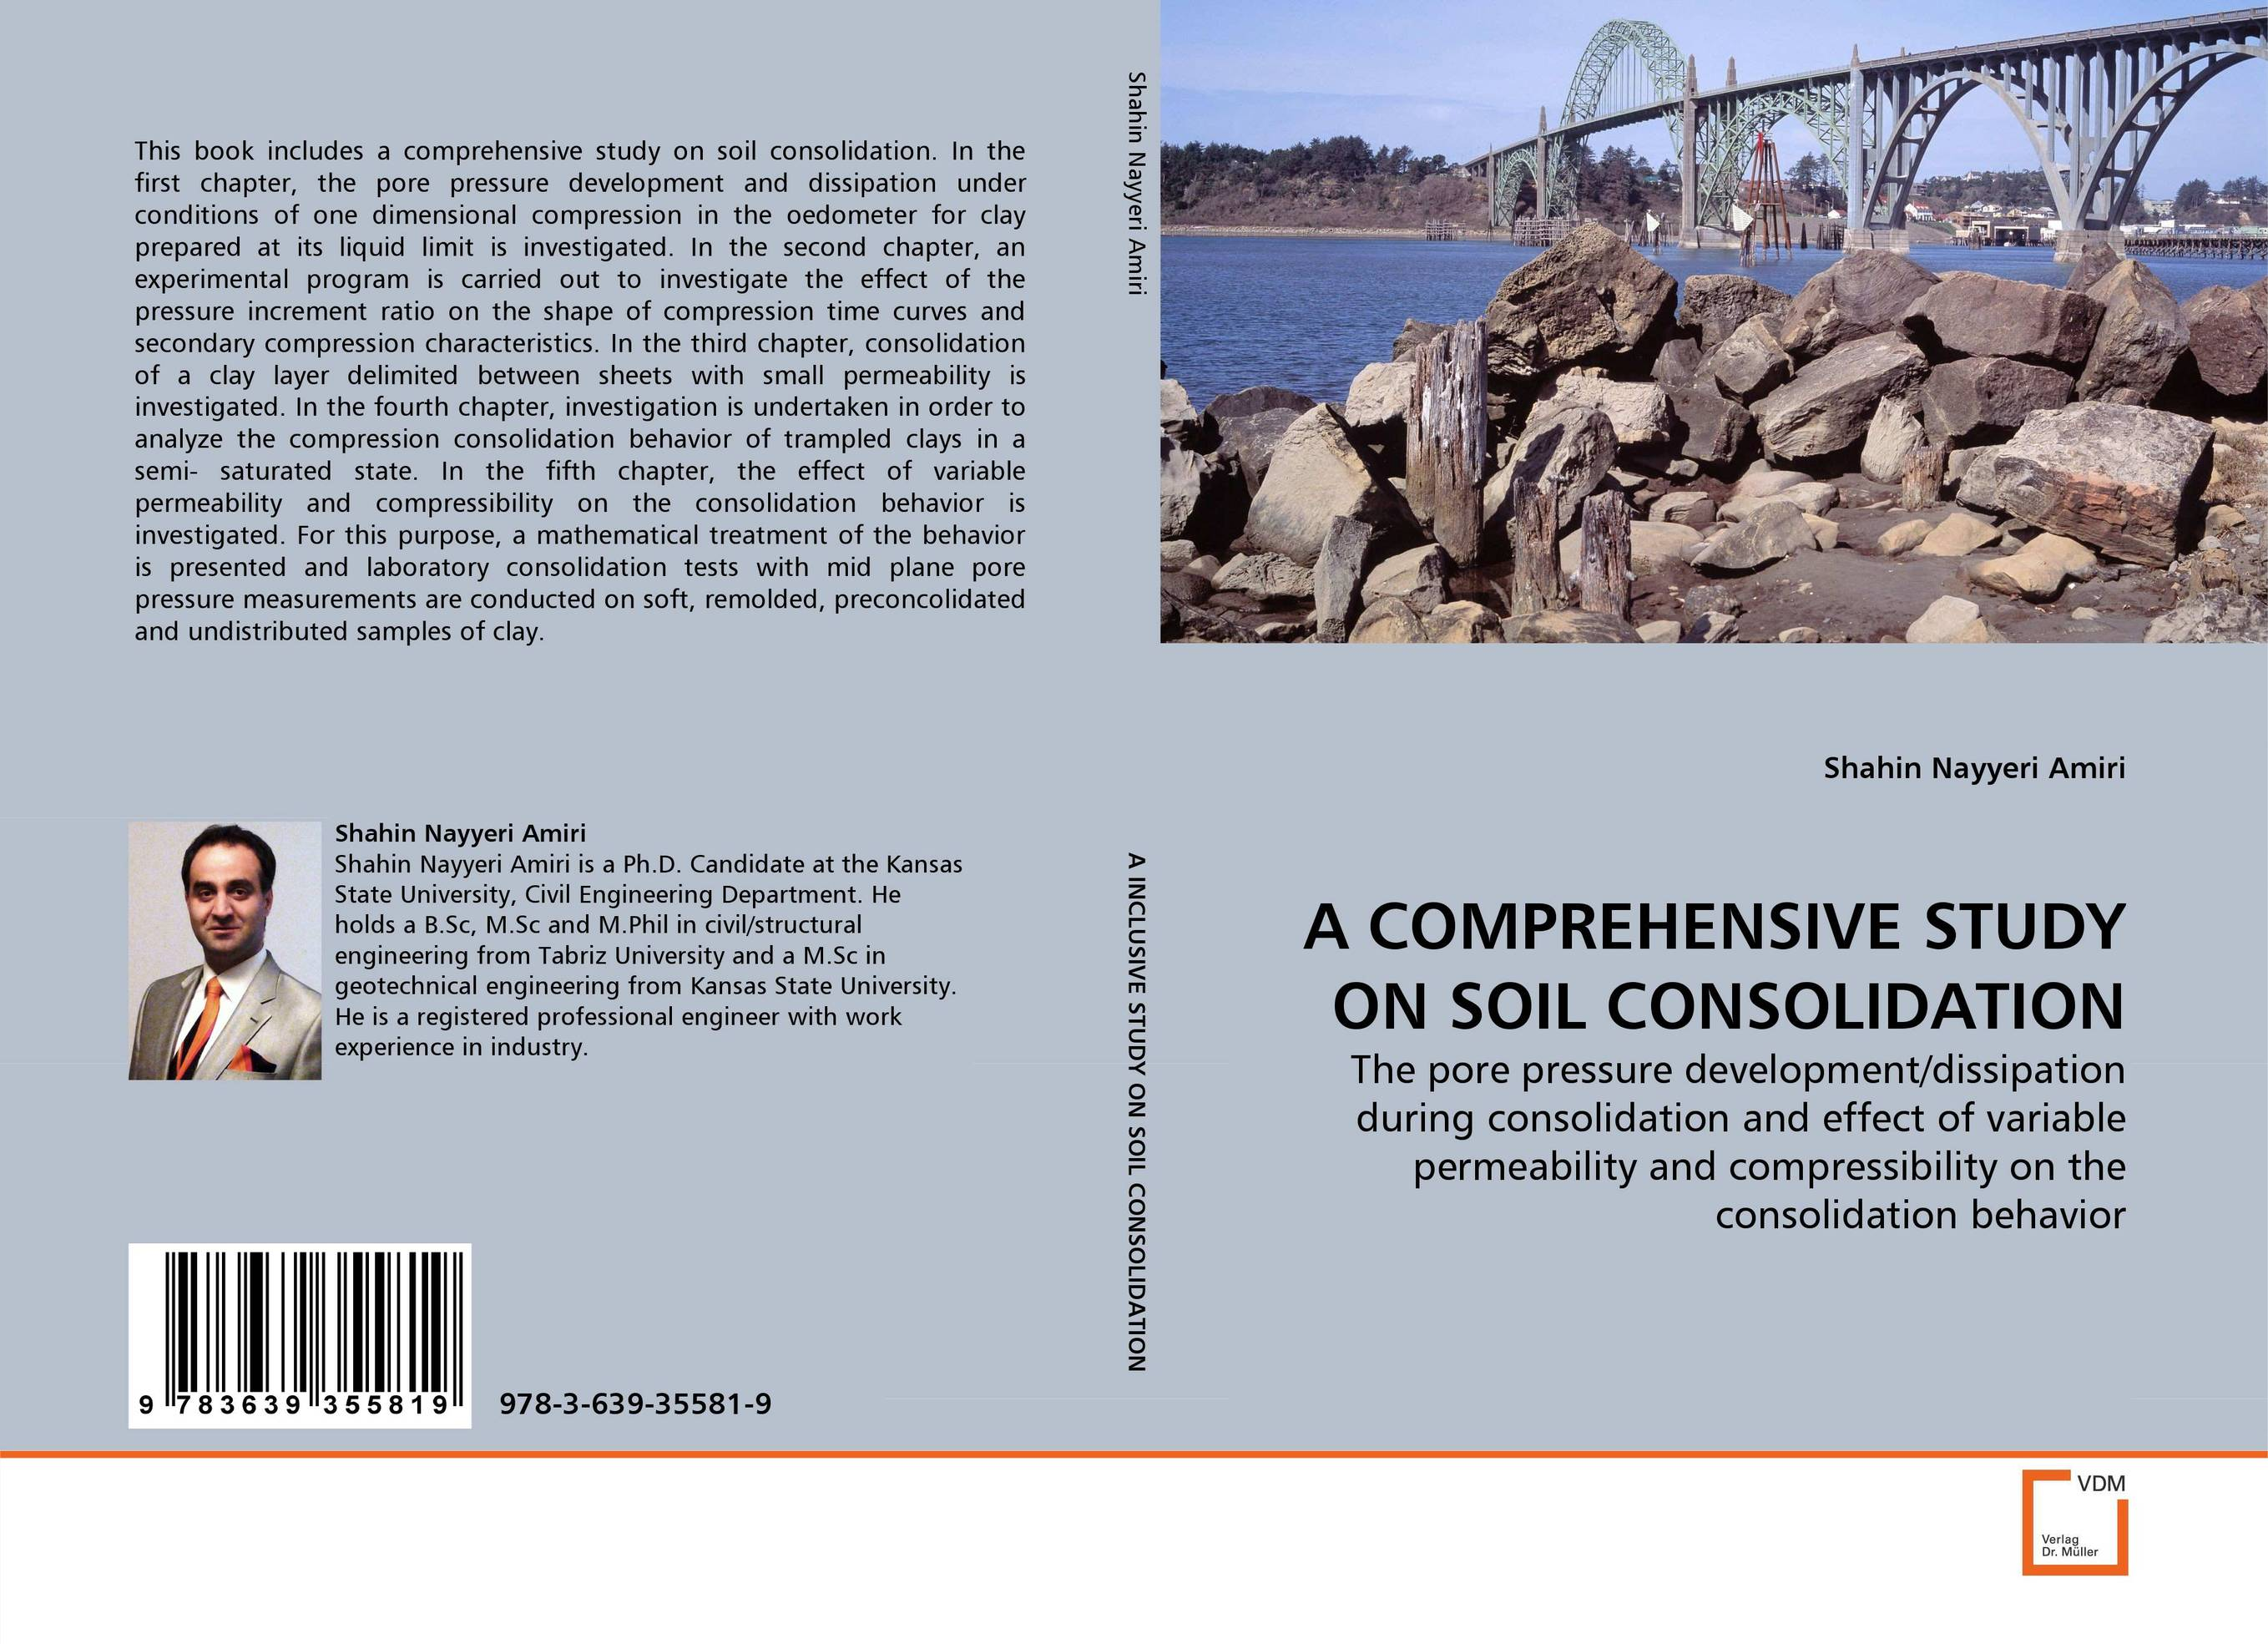 A COMPREHENSIVE STUDY ON SOIL CONSOLIDATION victoria wapf the disease of chopin a comprehensive study of a lifelong suffering